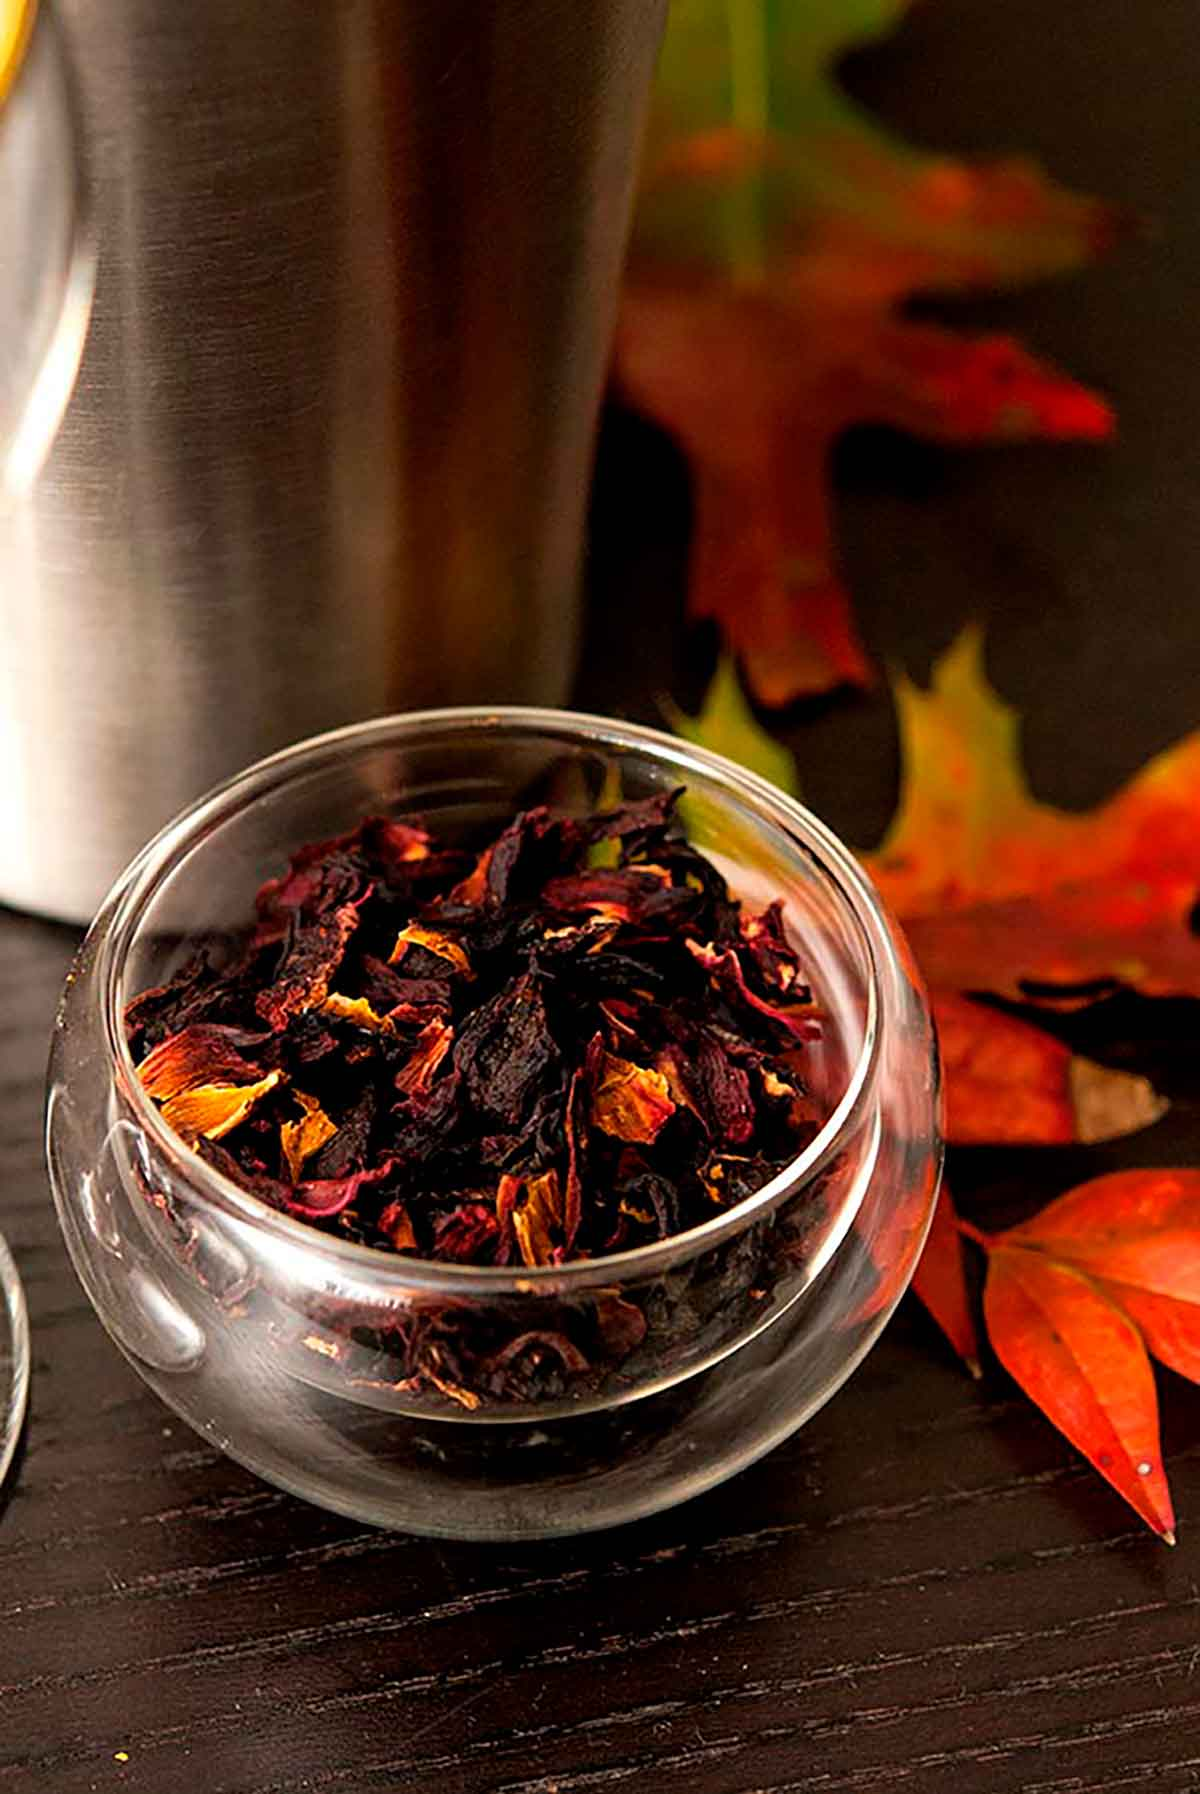 A small bowl of hibiscus flowers on a table with a few autumn leaves, in front of a cocktail shaker.